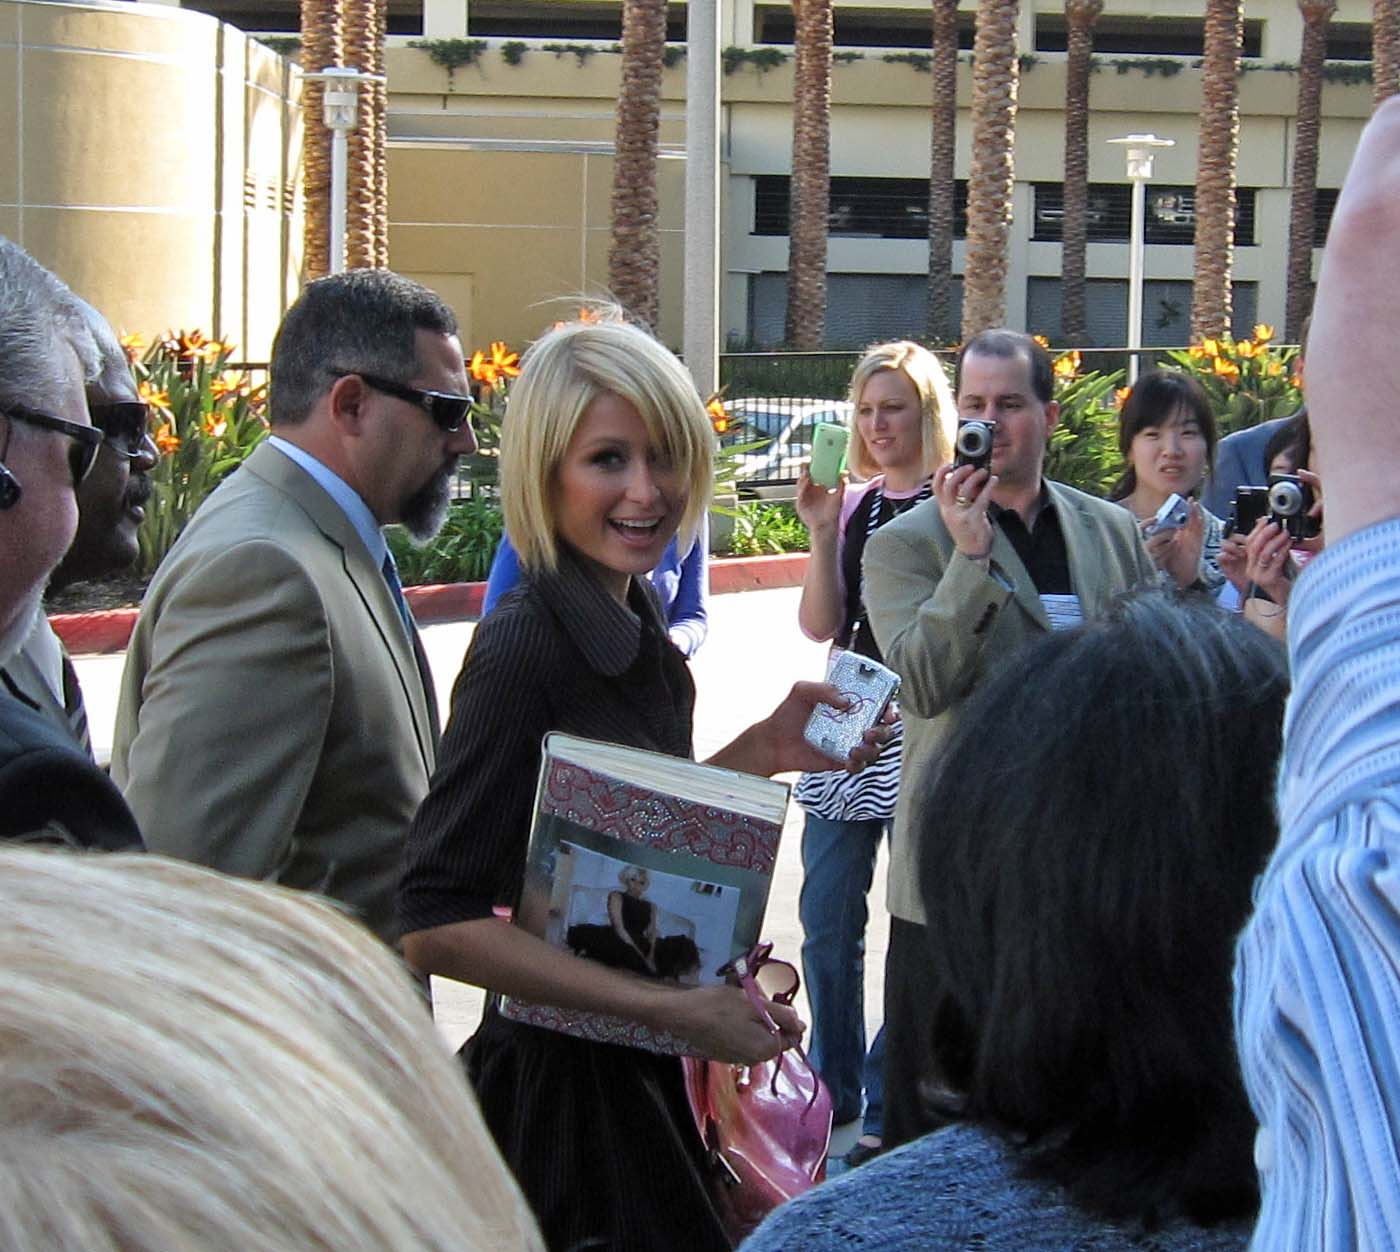 Paris brought along her scrapbook album.